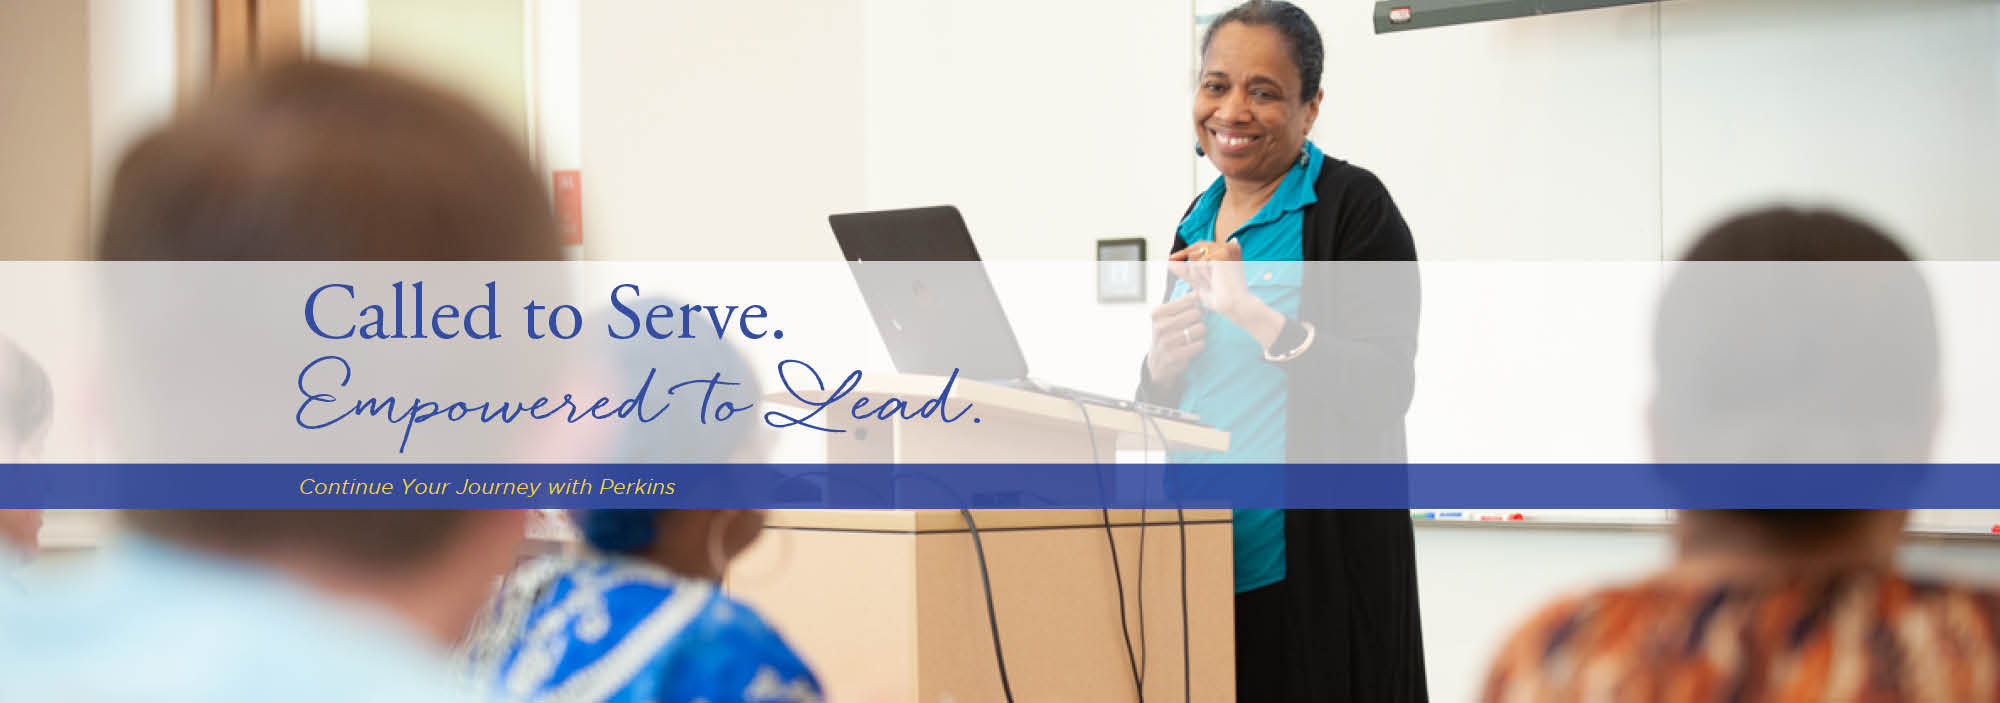 Called to Serve. Empowered to Lead. Continue Your Journey With Perkins